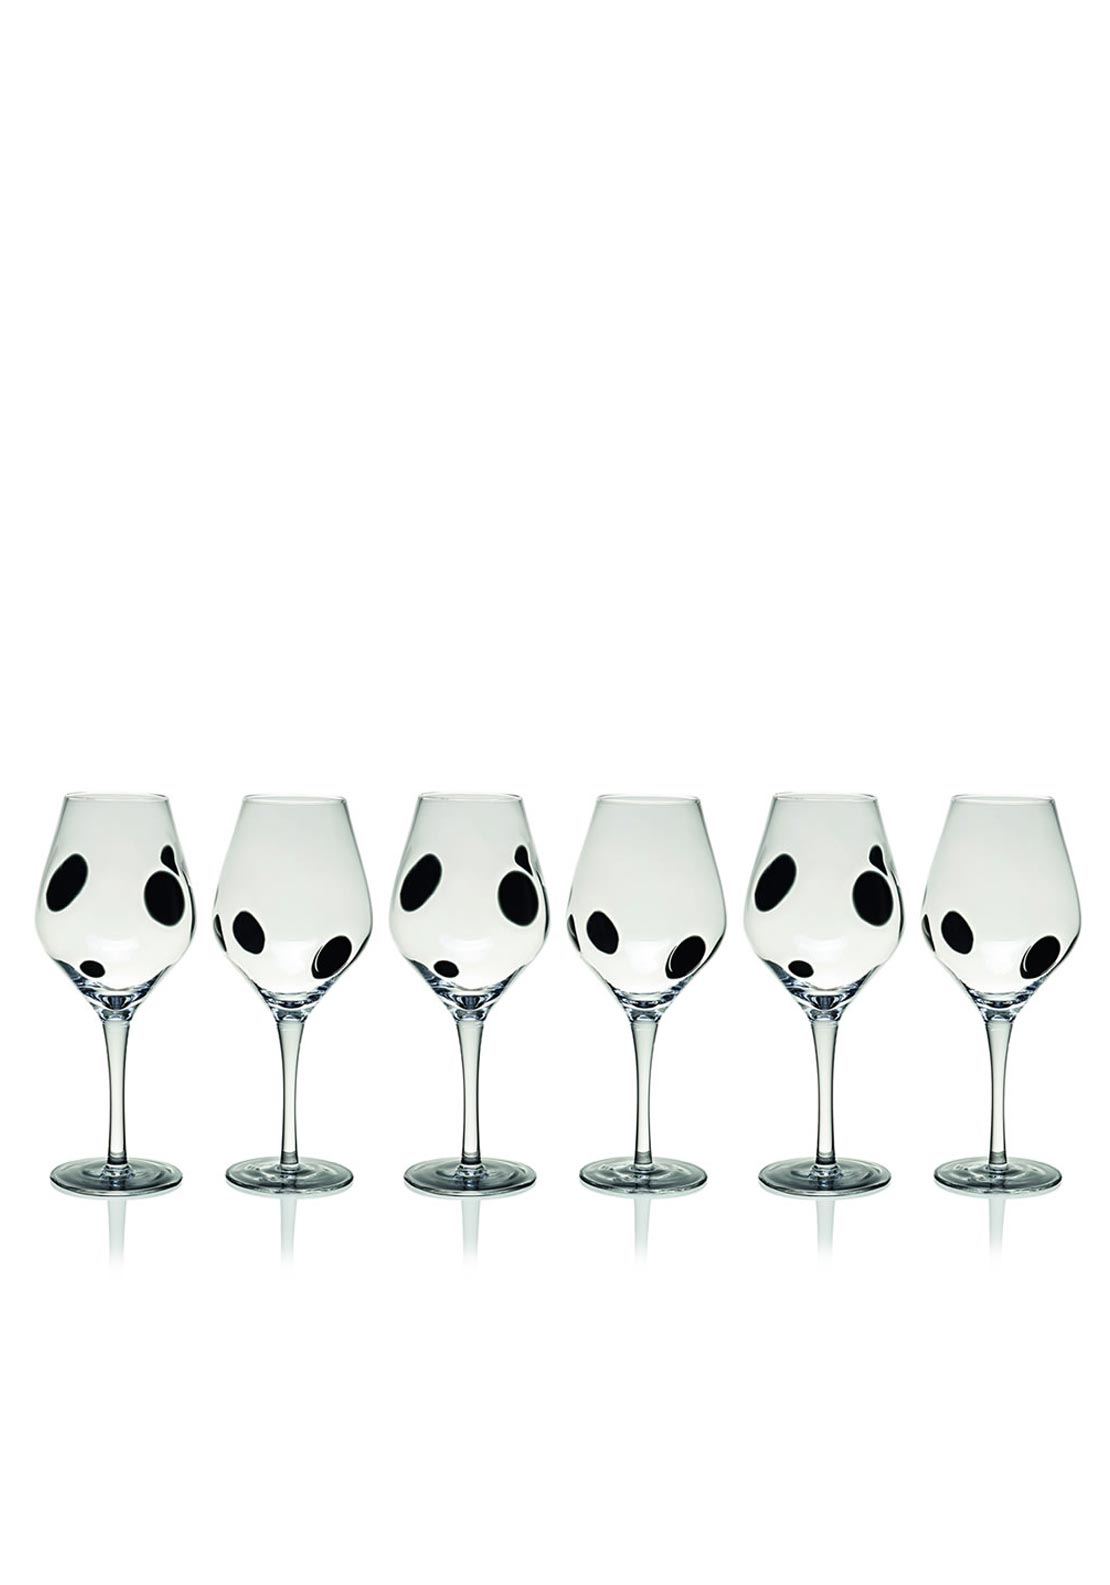 Newgrange Living Black Galaxy Wine Goblet, Set of 6